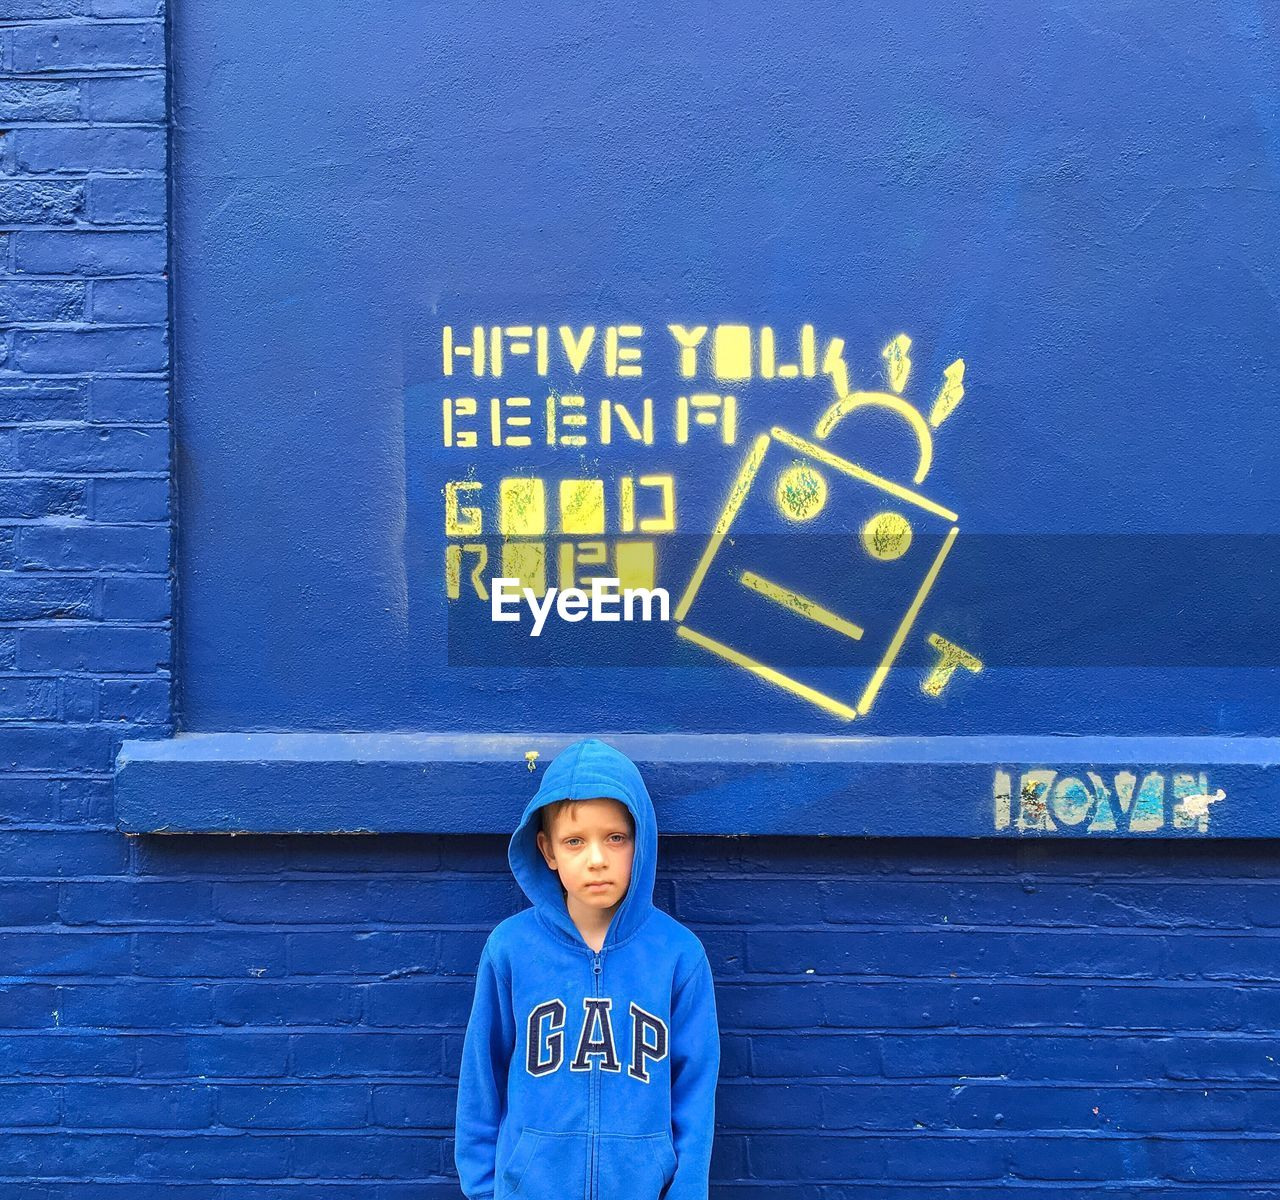 text, western script, blue, communication, day, outdoors, building exterior, boys, built structure, architecture, childhood, hooded shirt, real people, one person, portrait, standing, people